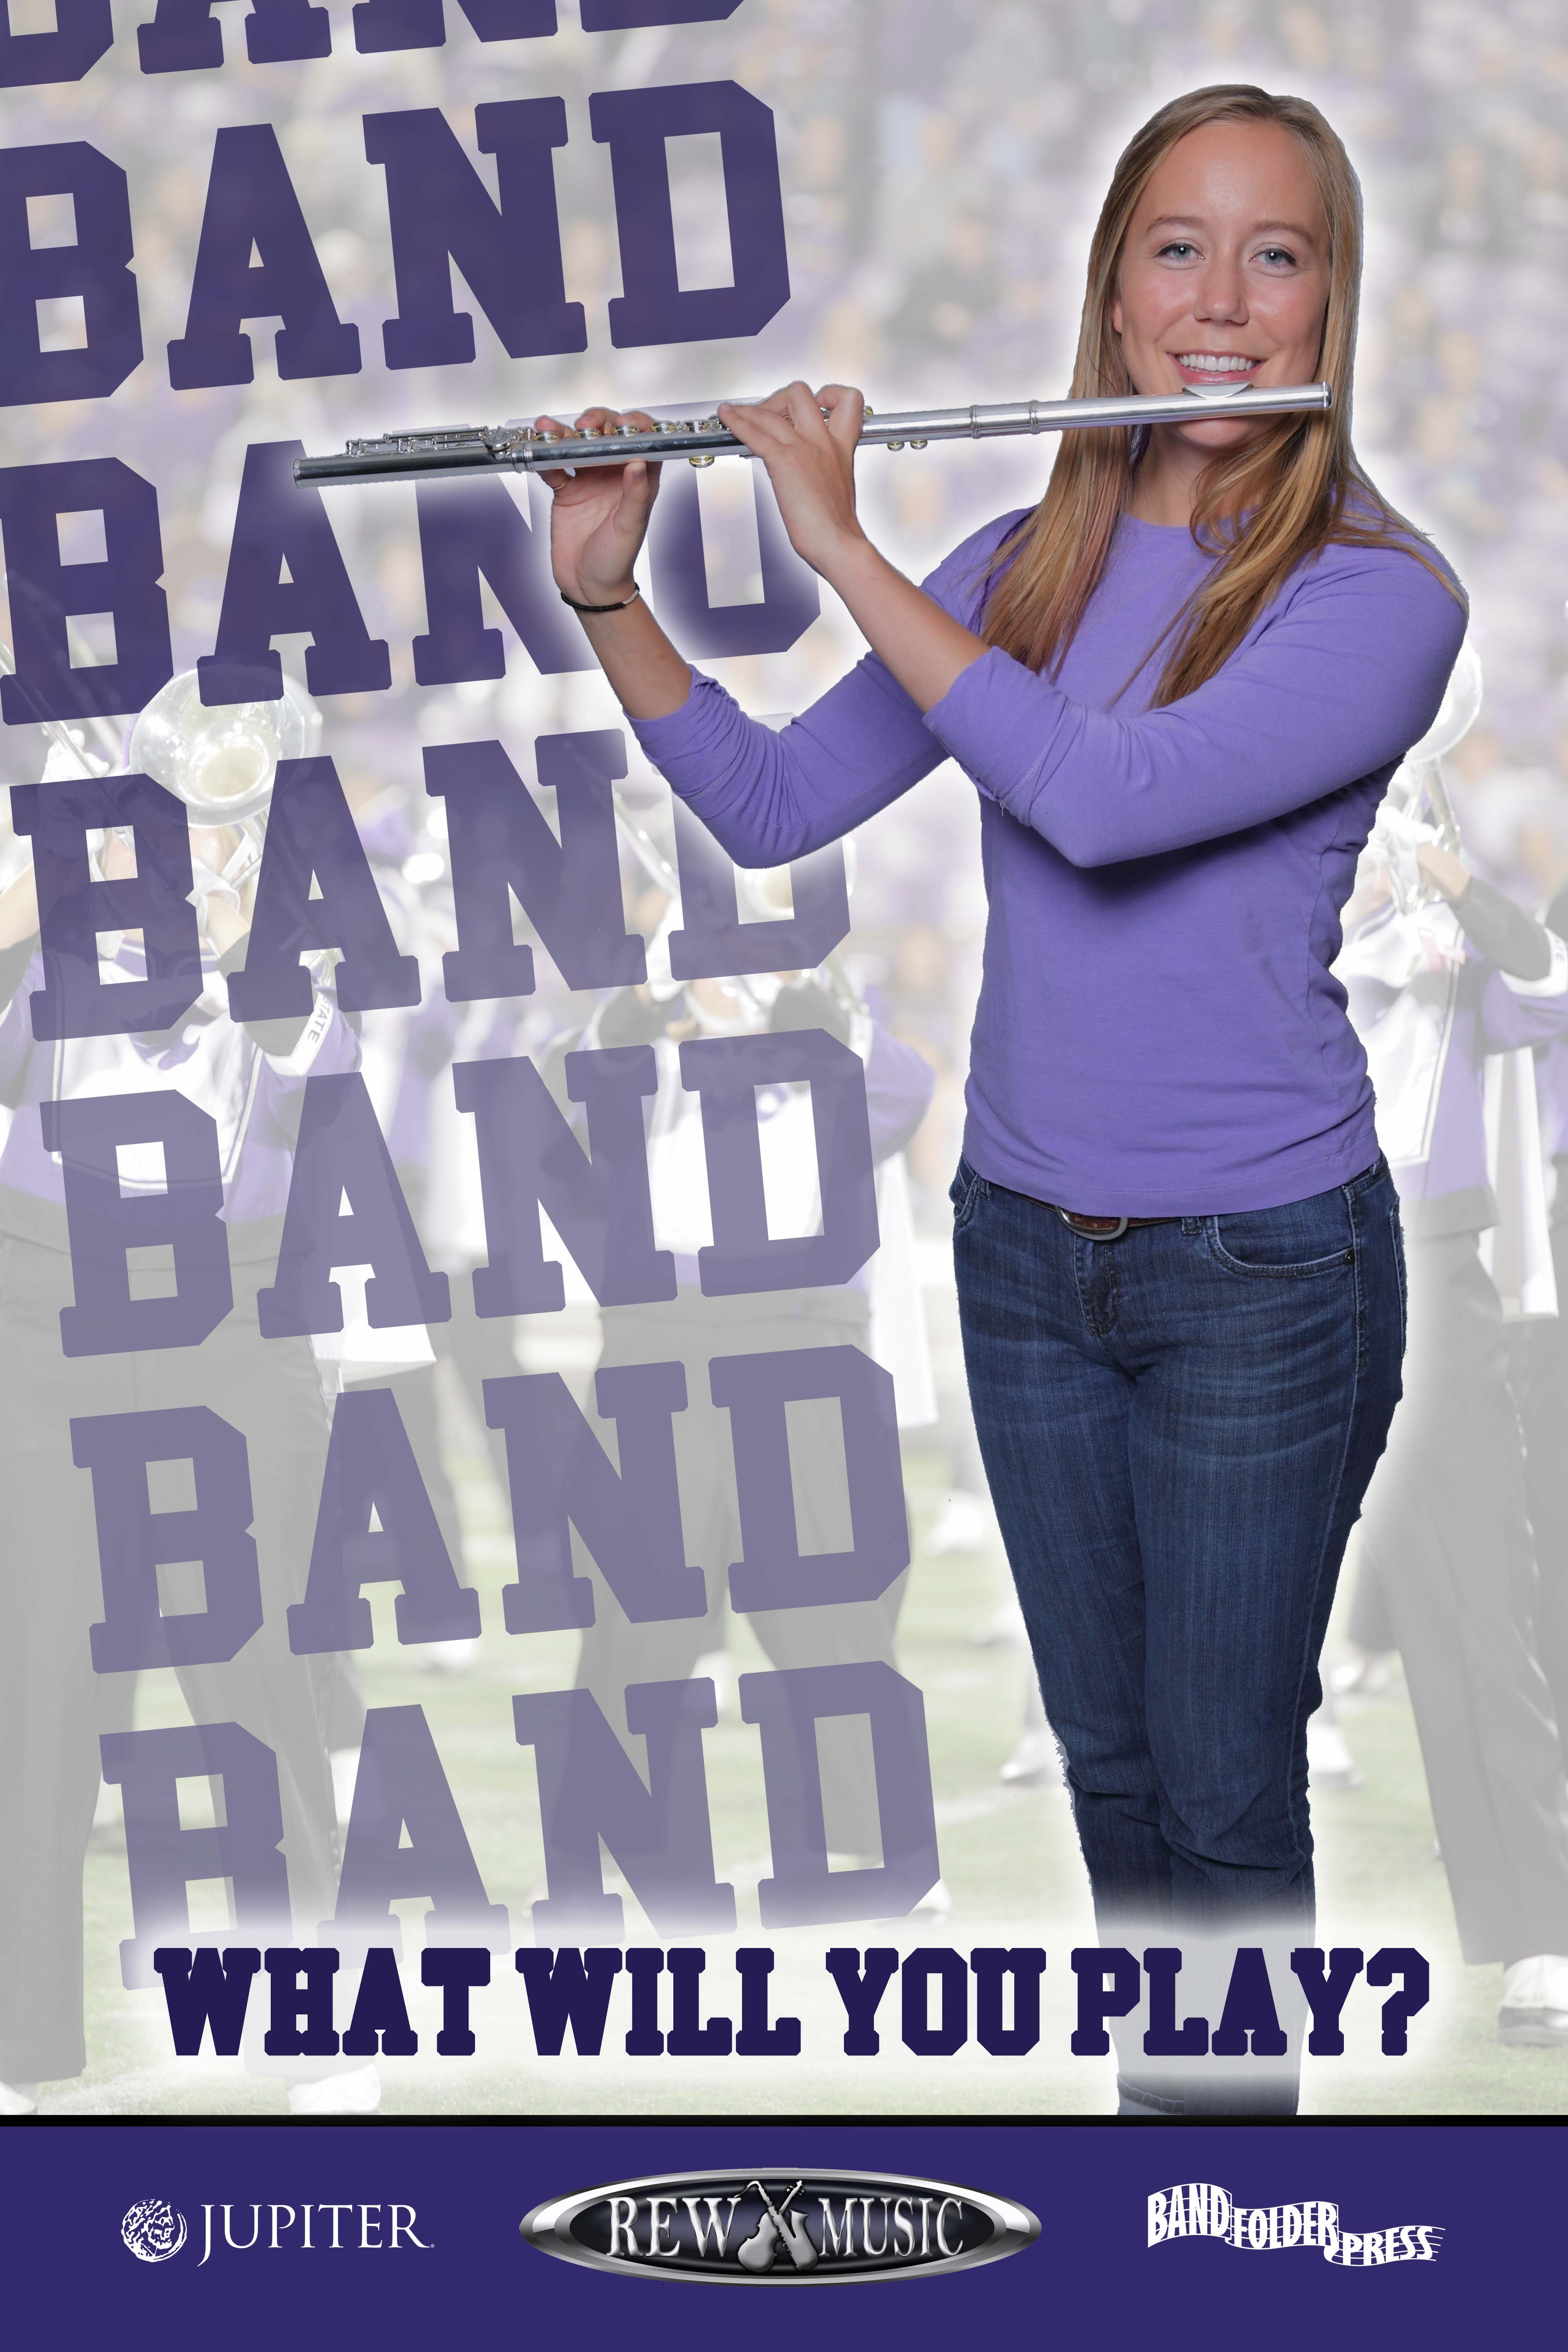 Join the School Band Flute player